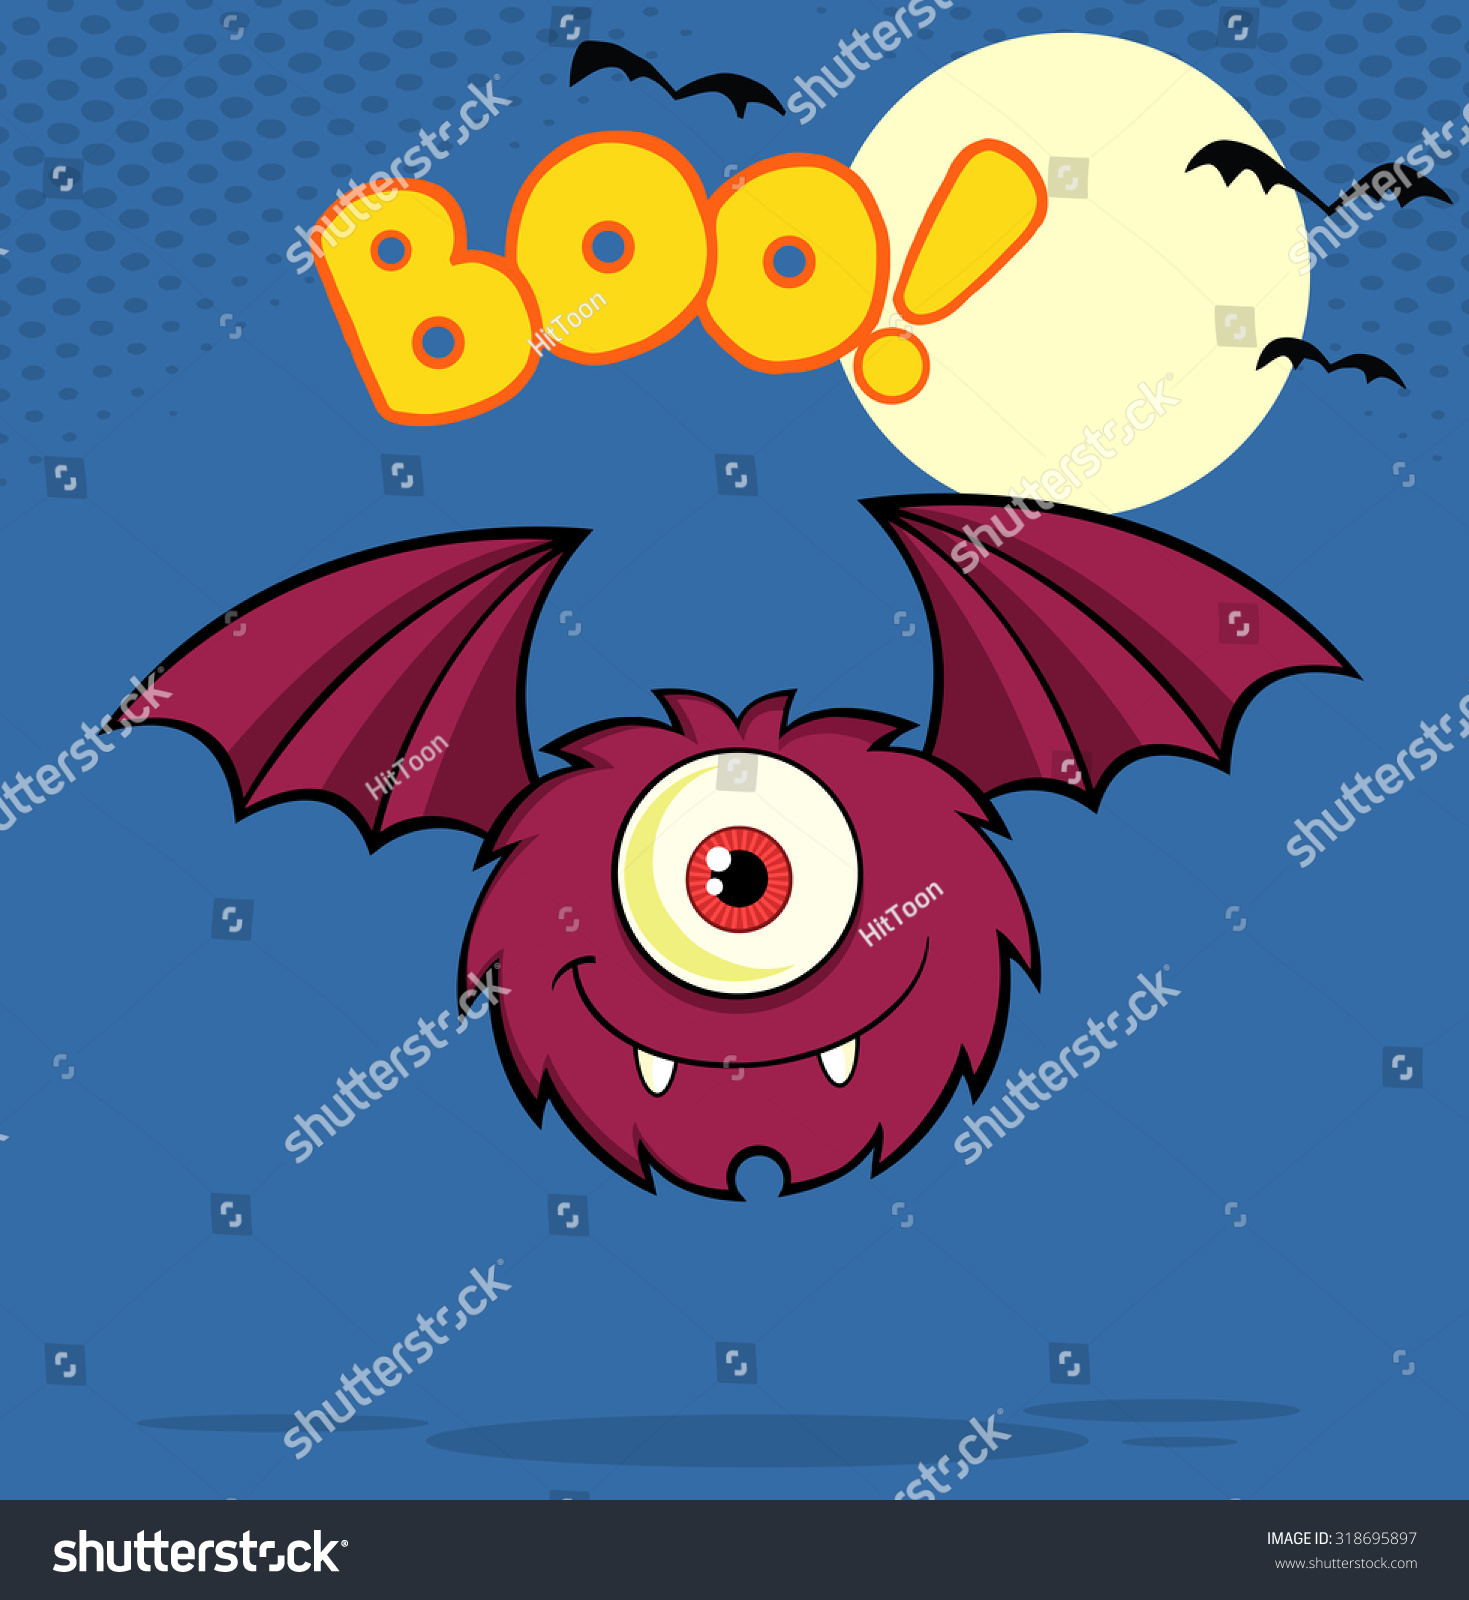 1 Eyed Cartoon Characters : Furry one eyed monster cartoon character flying with text